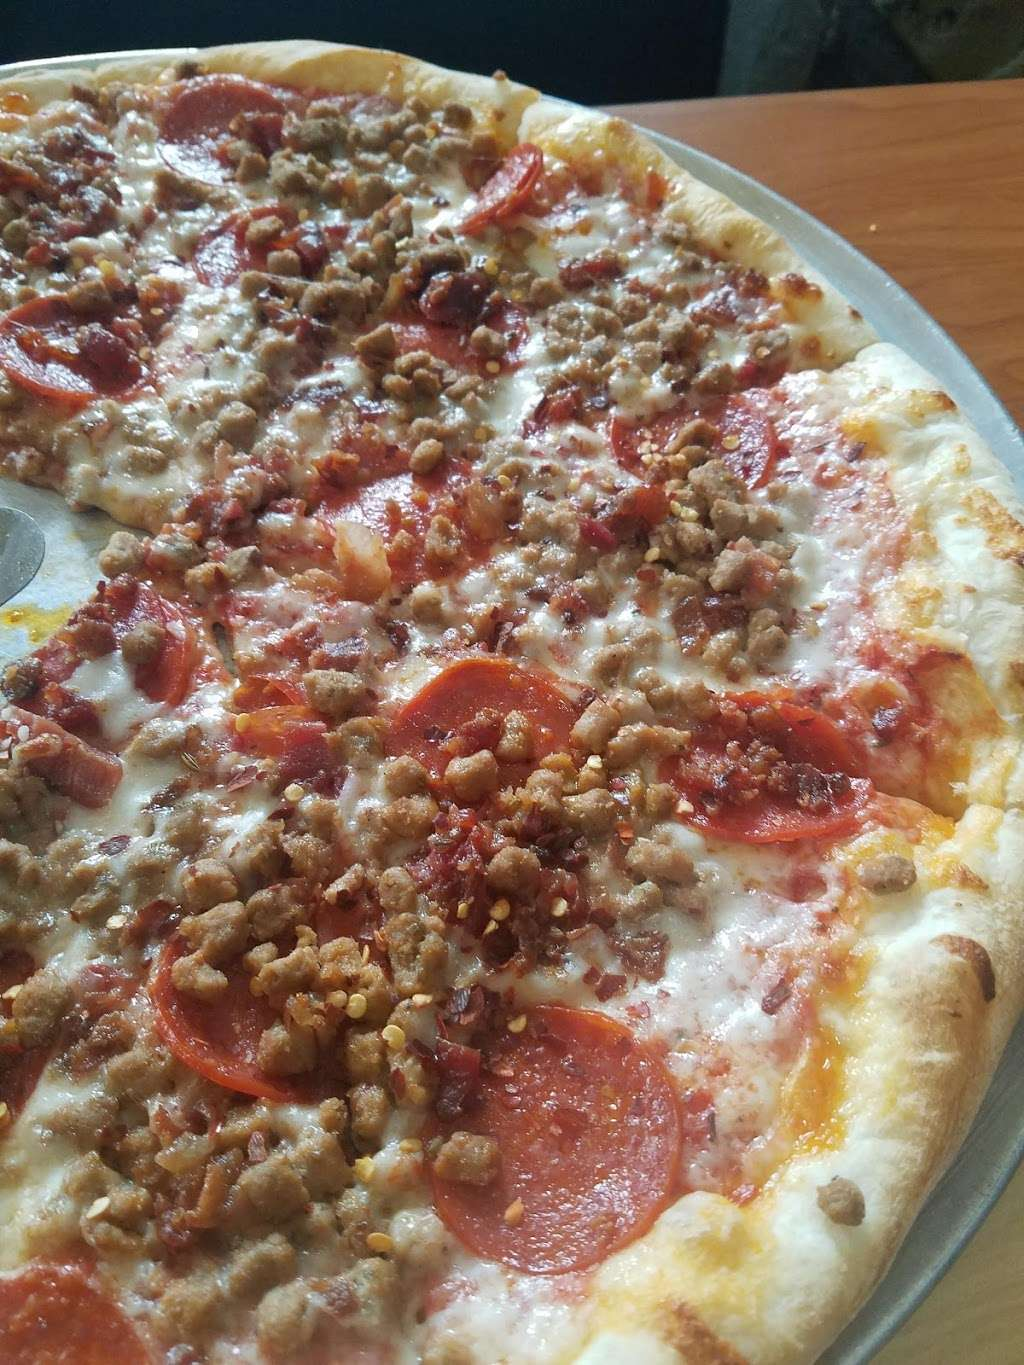 Baccis Pizza & Pasta - meal delivery  | Photo 8 of 10 | Address: 3220 E Hebron Pkwy, Carrollton, TX 75010, USA | Phone: (972) 662-7437